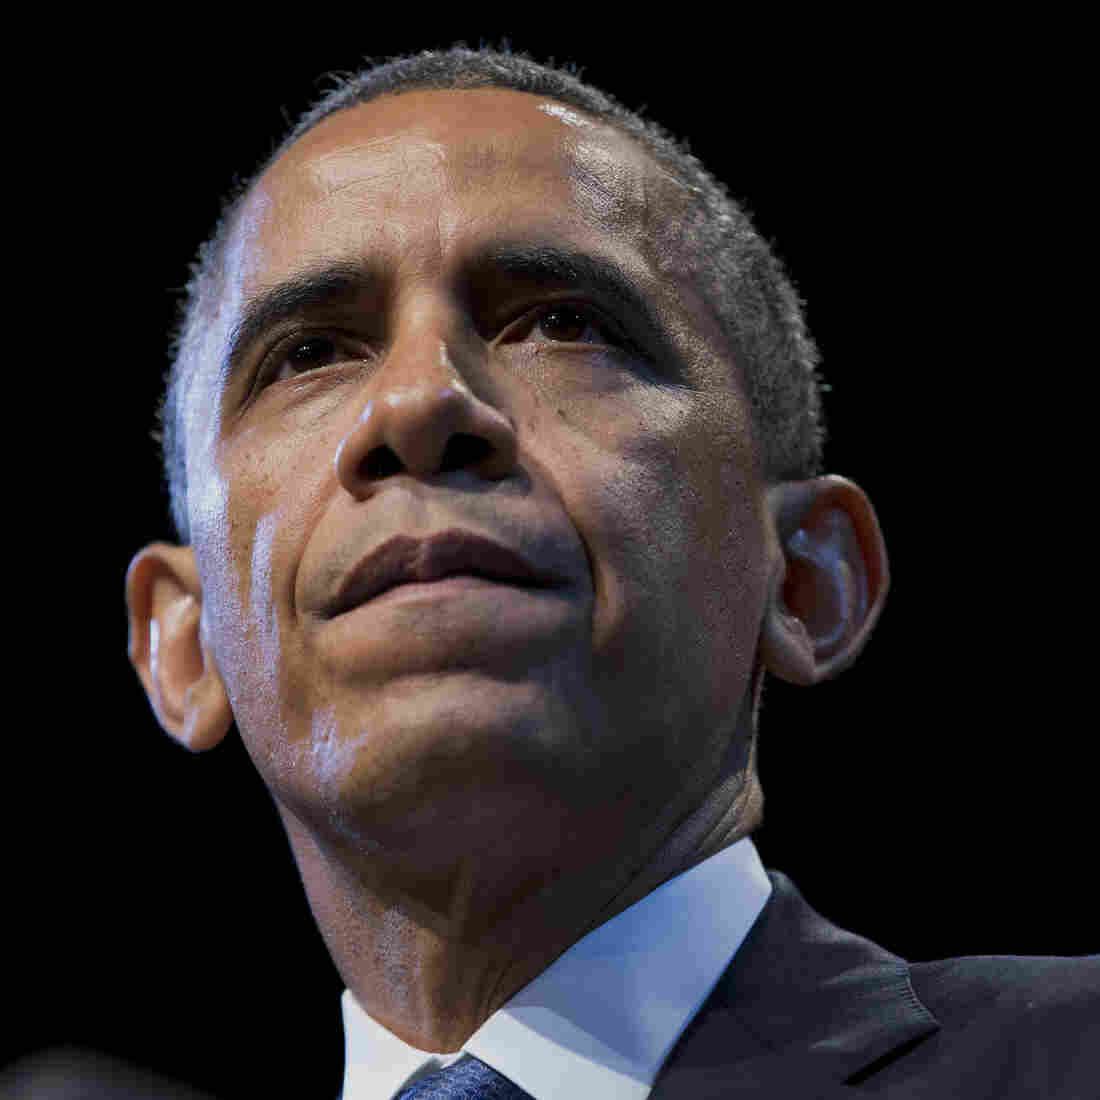 Income Inequality Is The 'Challenge Of Our Time,' Obama Says